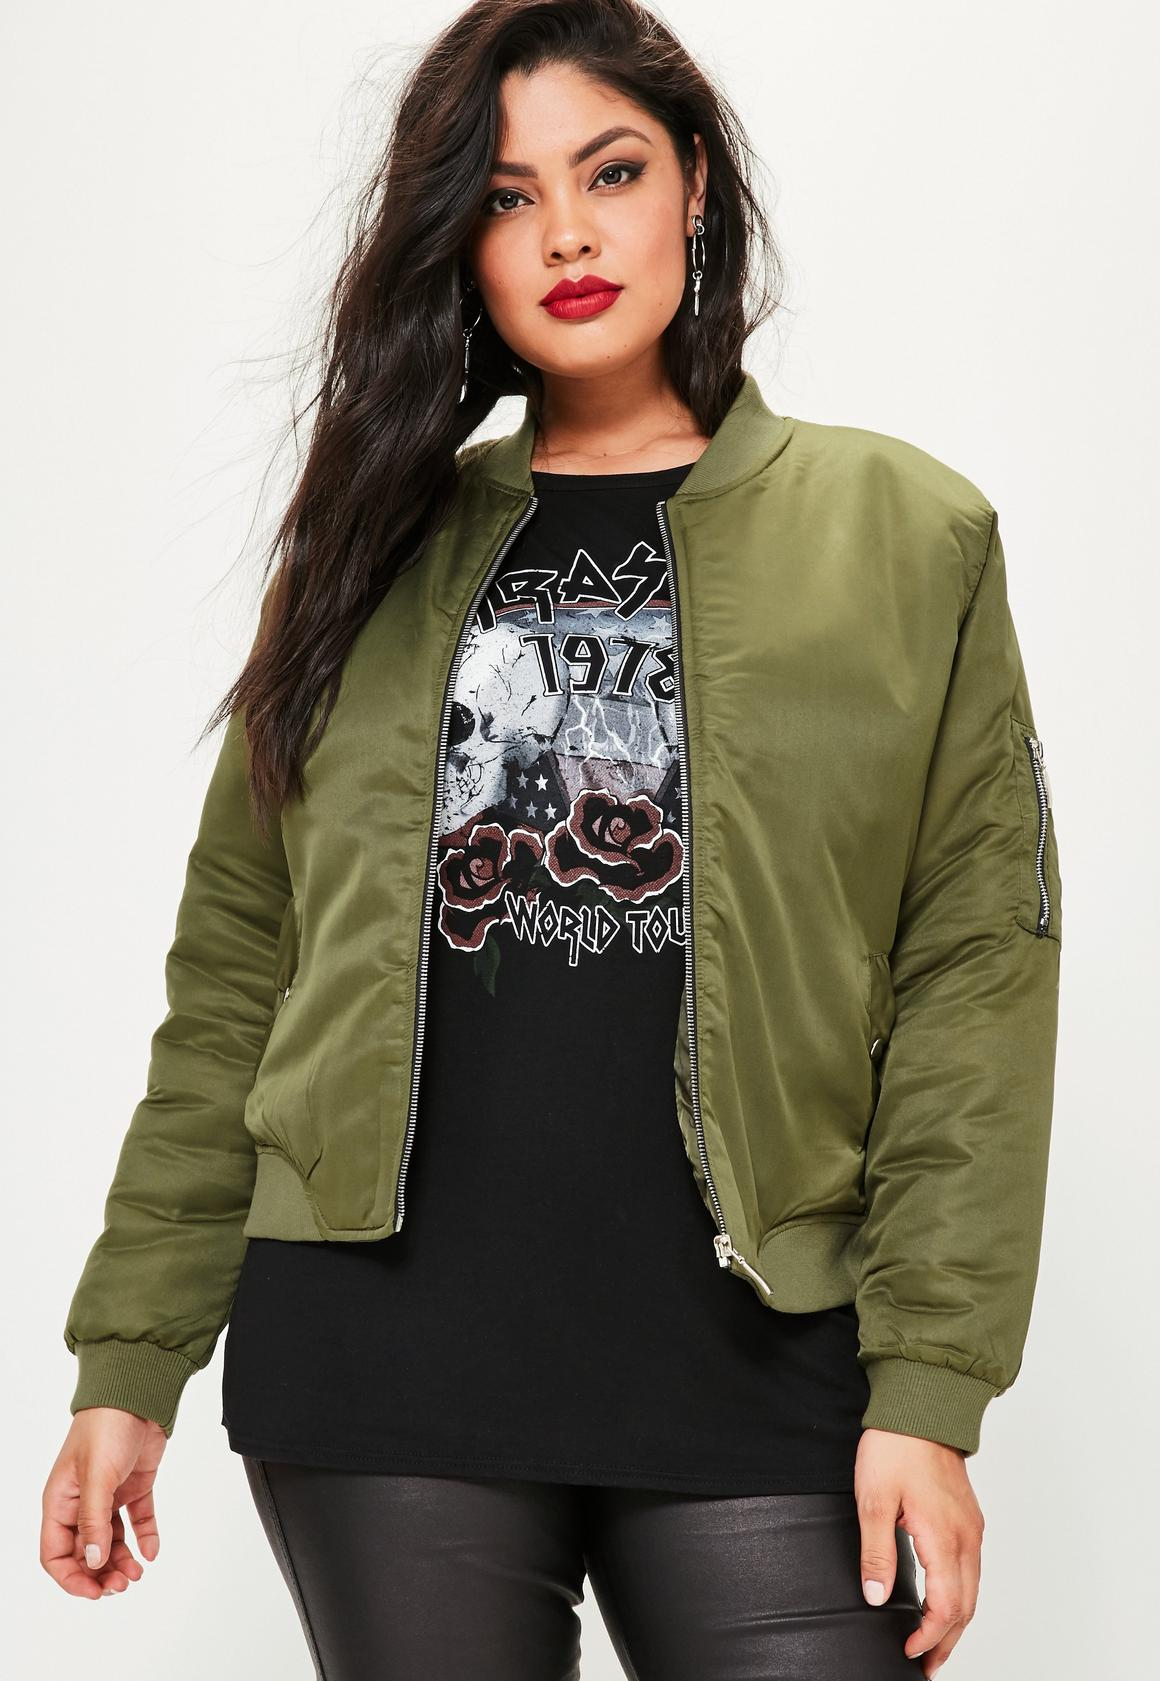 Collection Plus Size Jacket Pictures - Newyorkfashion